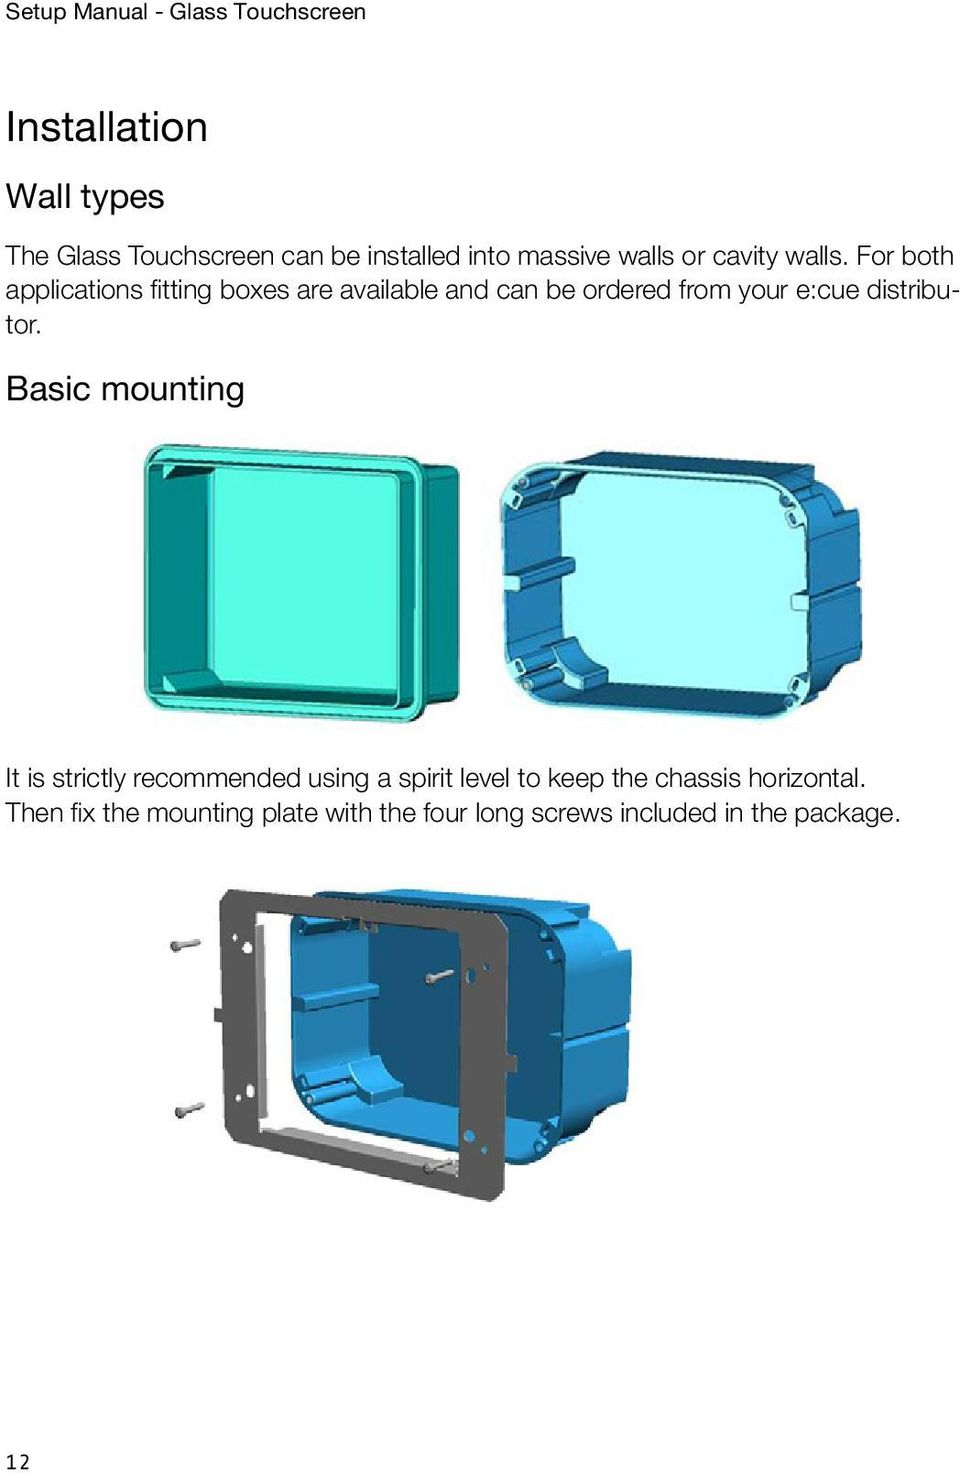 For both applications fitting boxes are available and can be ordered from your e:cue distributor.